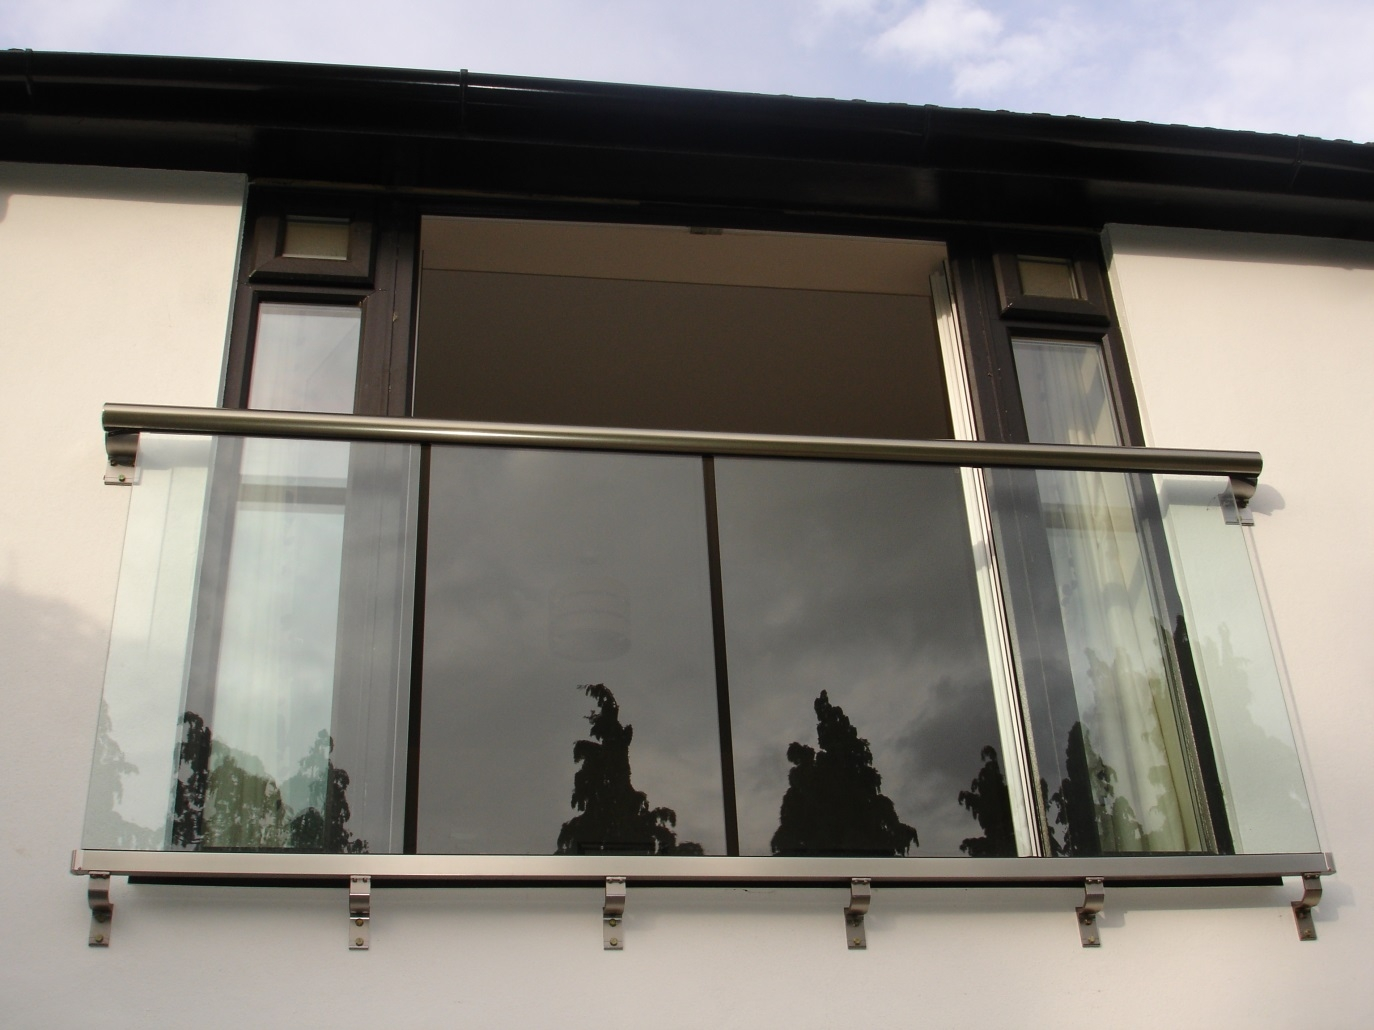 Juliette balcony glass for sale balcony systems for Balcony with glass